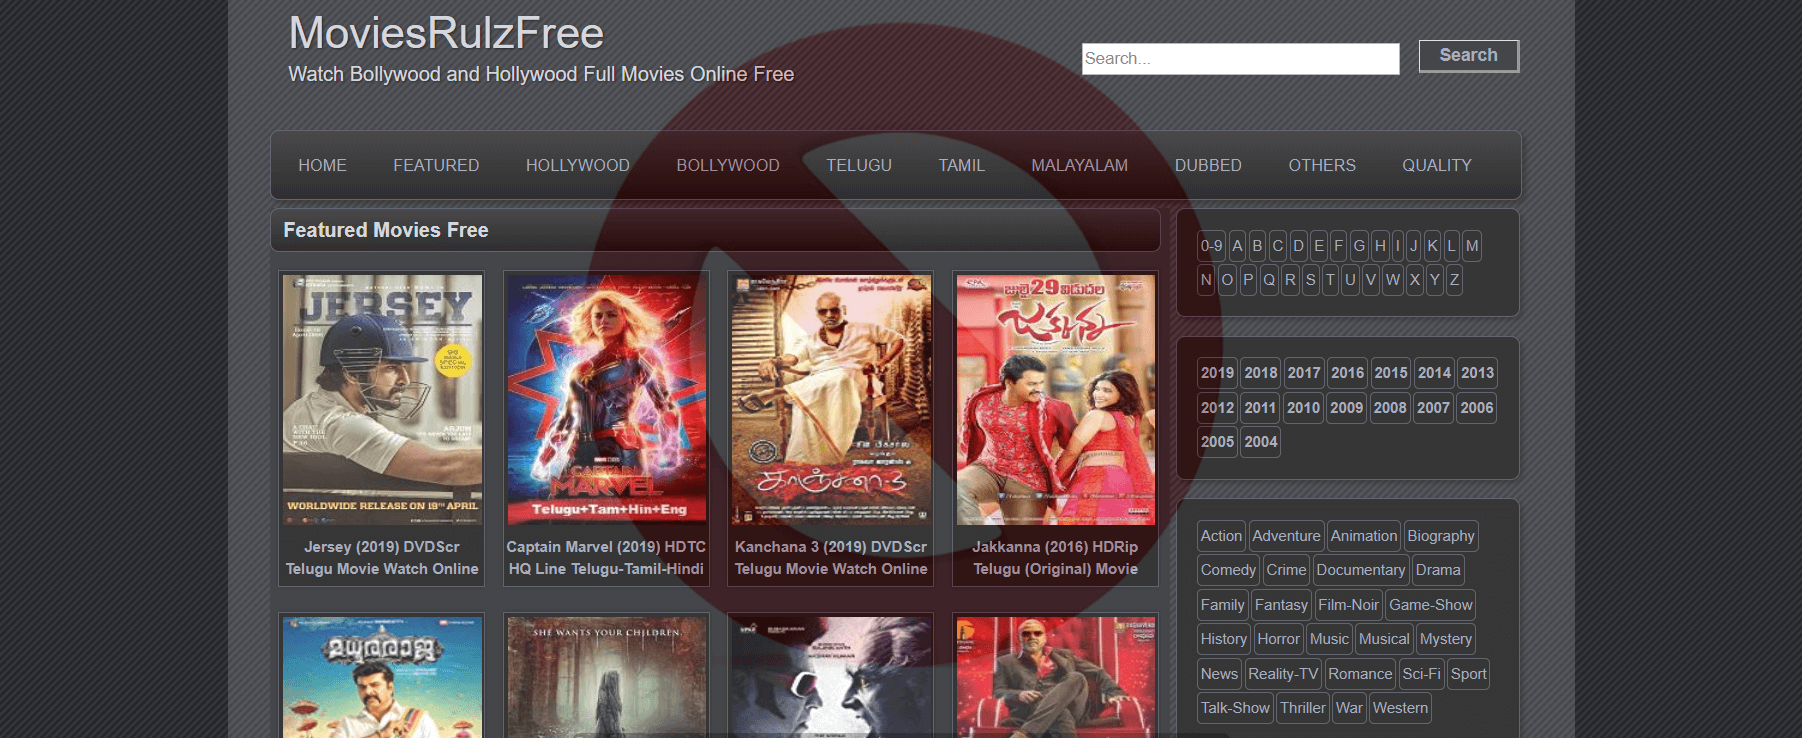 utorrent movies free download bollywood